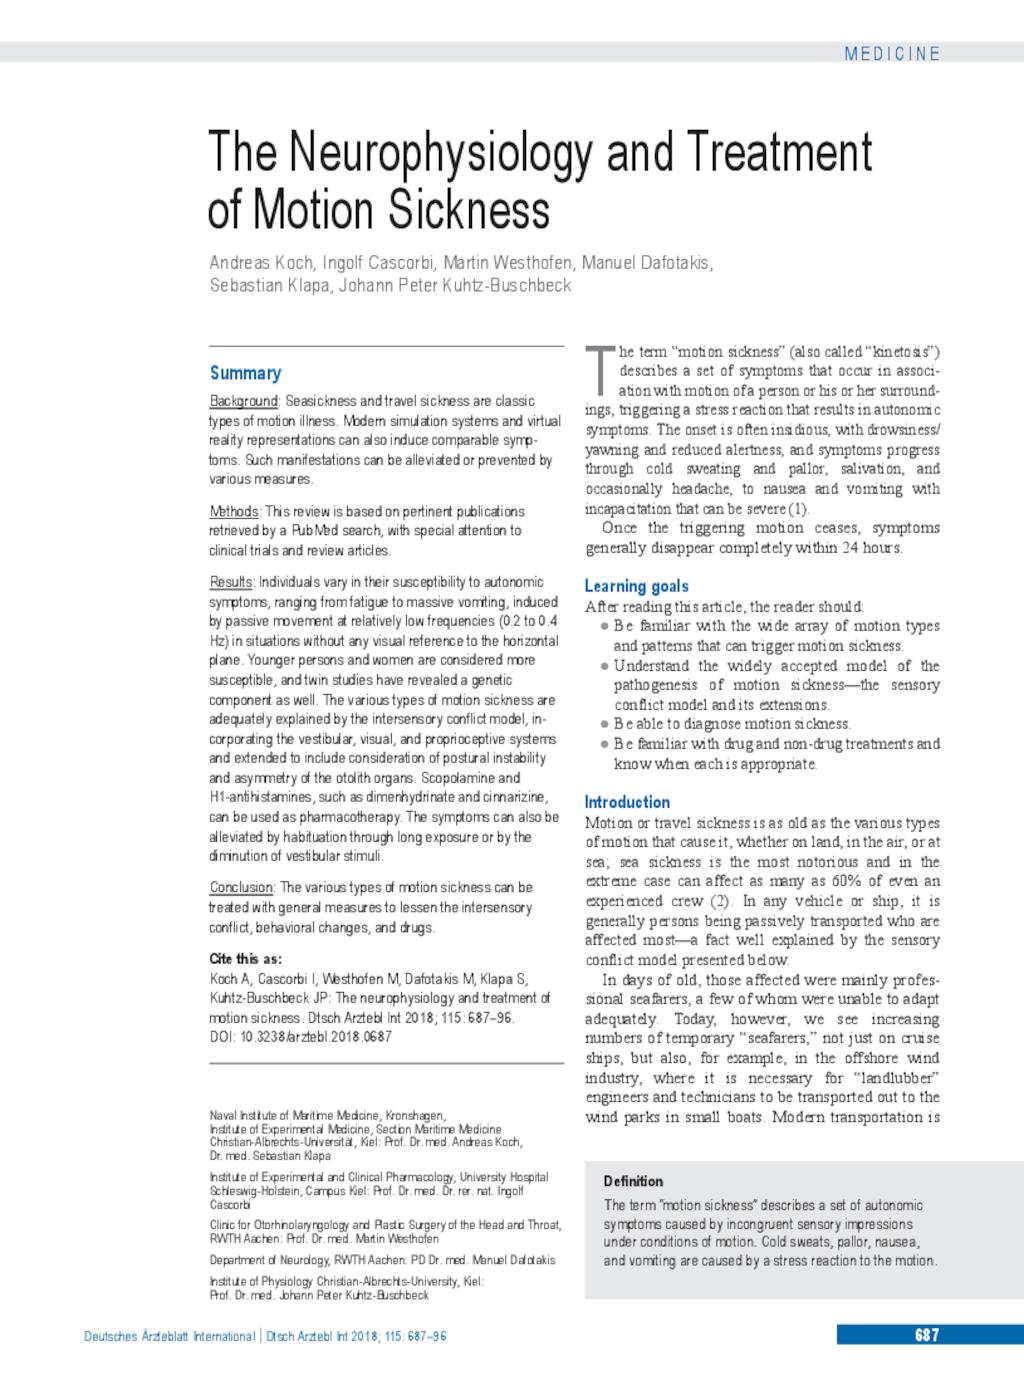 The Neurophysiology and Treatment of Motion Sickness (12 10